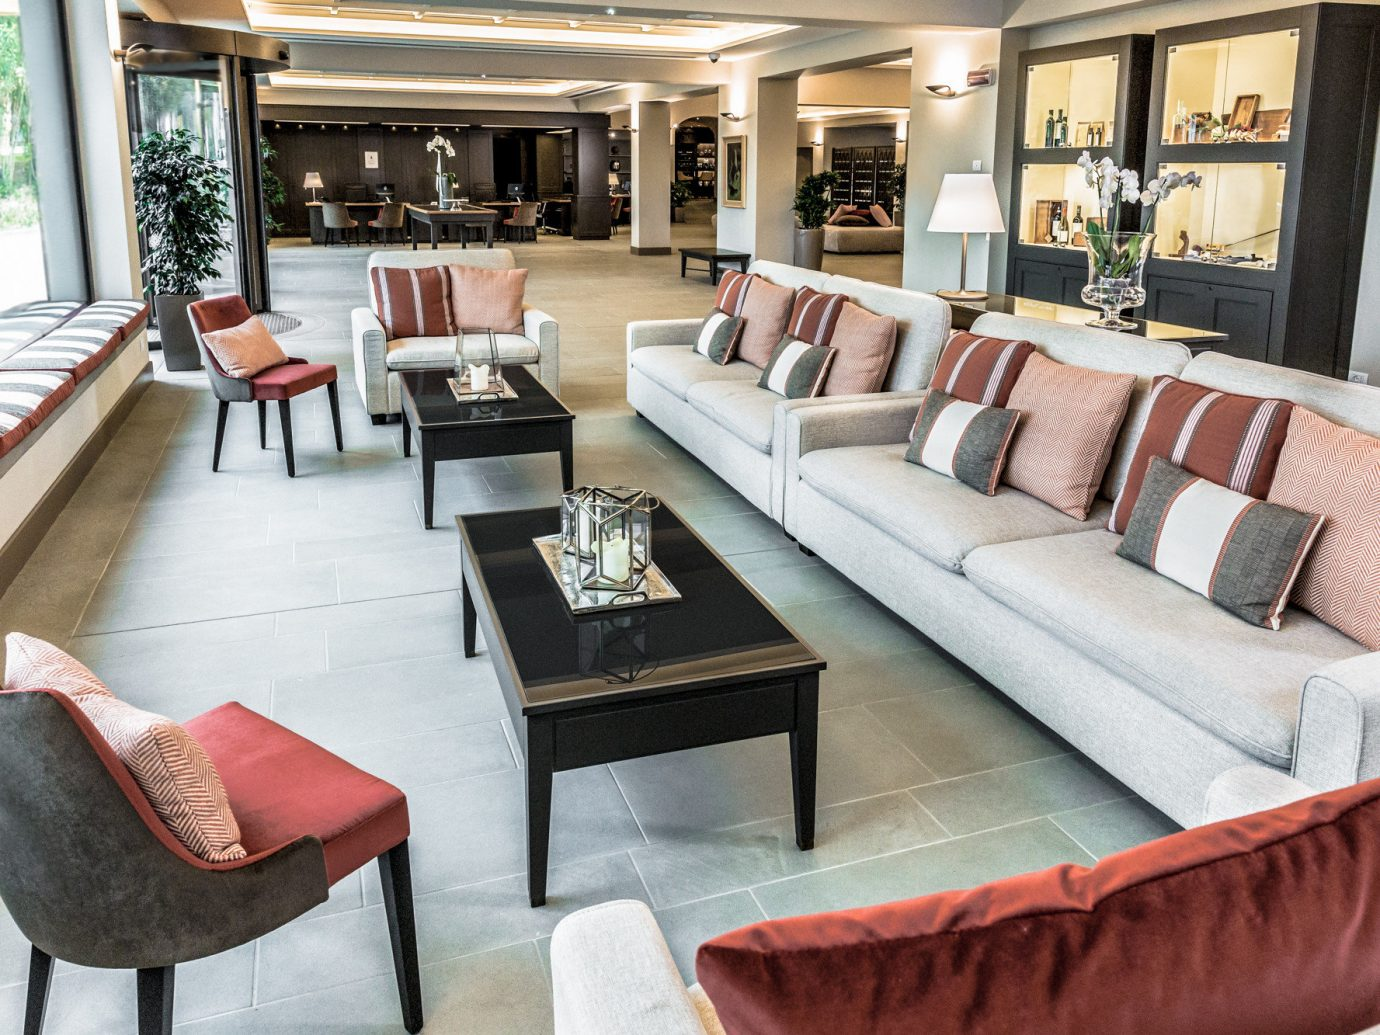 Italy Trip Ideas floor Living sofa indoor room table chair window living room property furniture Lobby yacht interior design vehicle estate Suite home Boat passenger ship area seat decorated leather